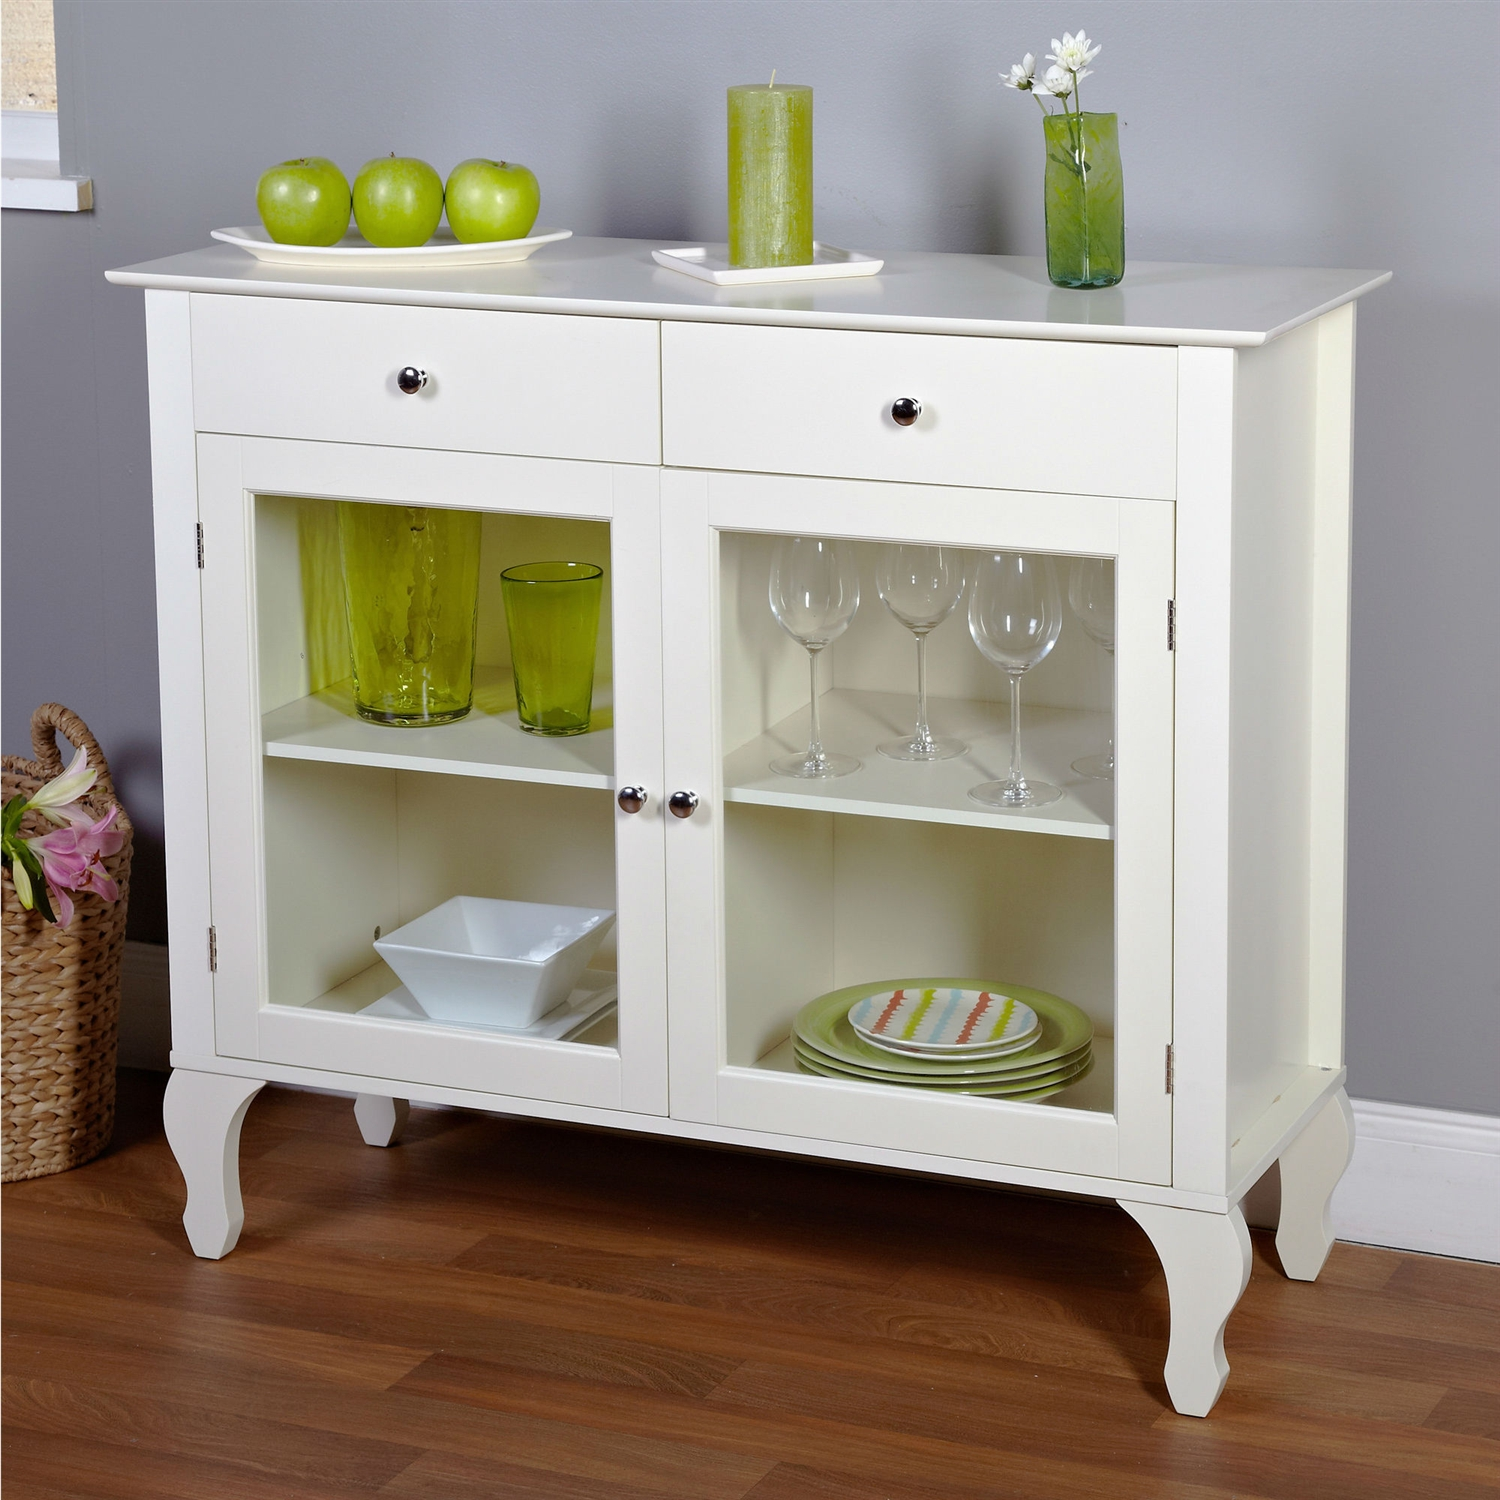 Antique White Sideboard Buffet Console Table with Glass Doors ...